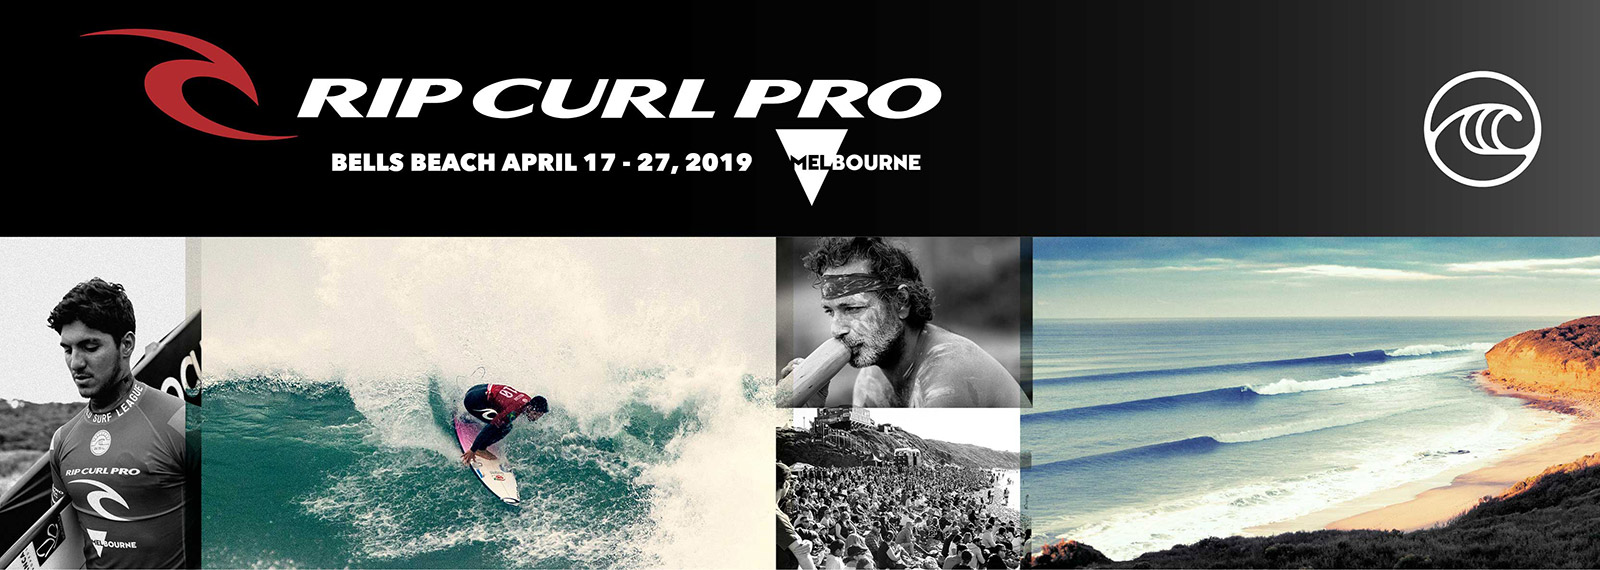 c64917787e97b ... Surf Threads · SEARCH GPS2 · wetsuit 2019SS · THE SEARCH · RIPCURL PRO.  1